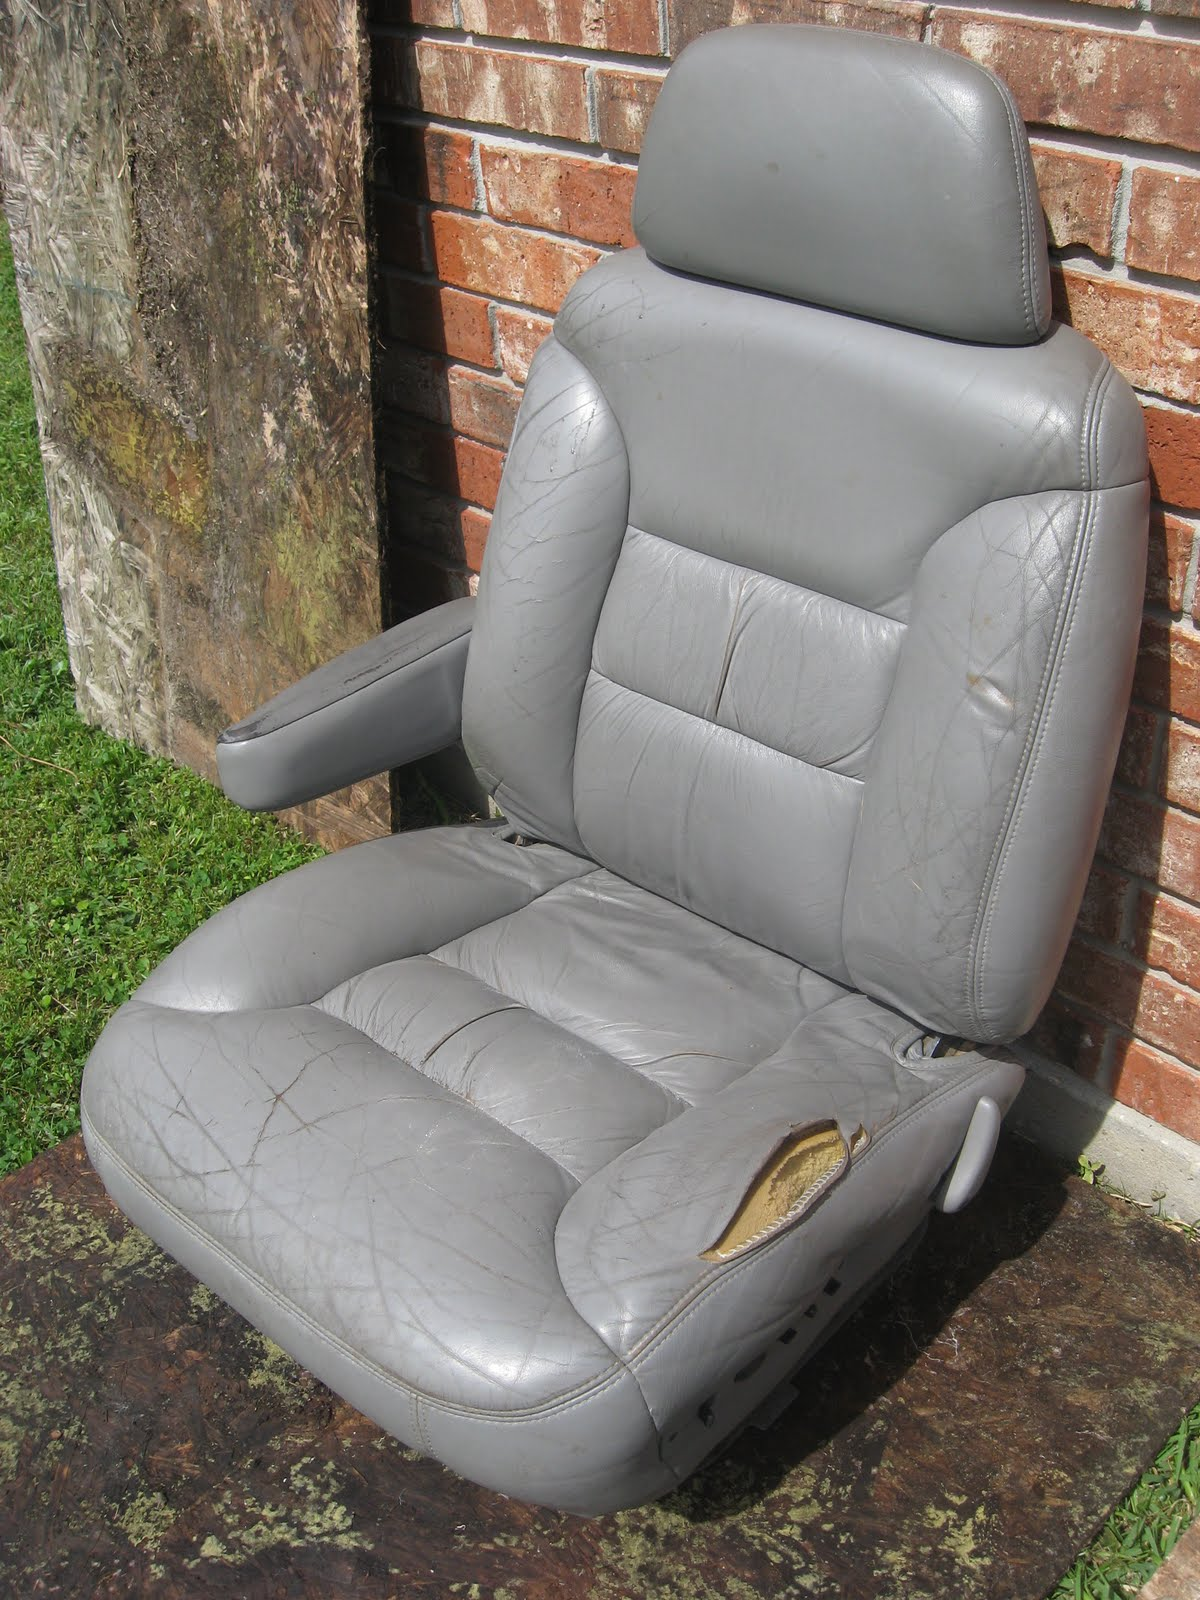 Hott sale 98 chevy tahoe grey leather seats 175 new orleans